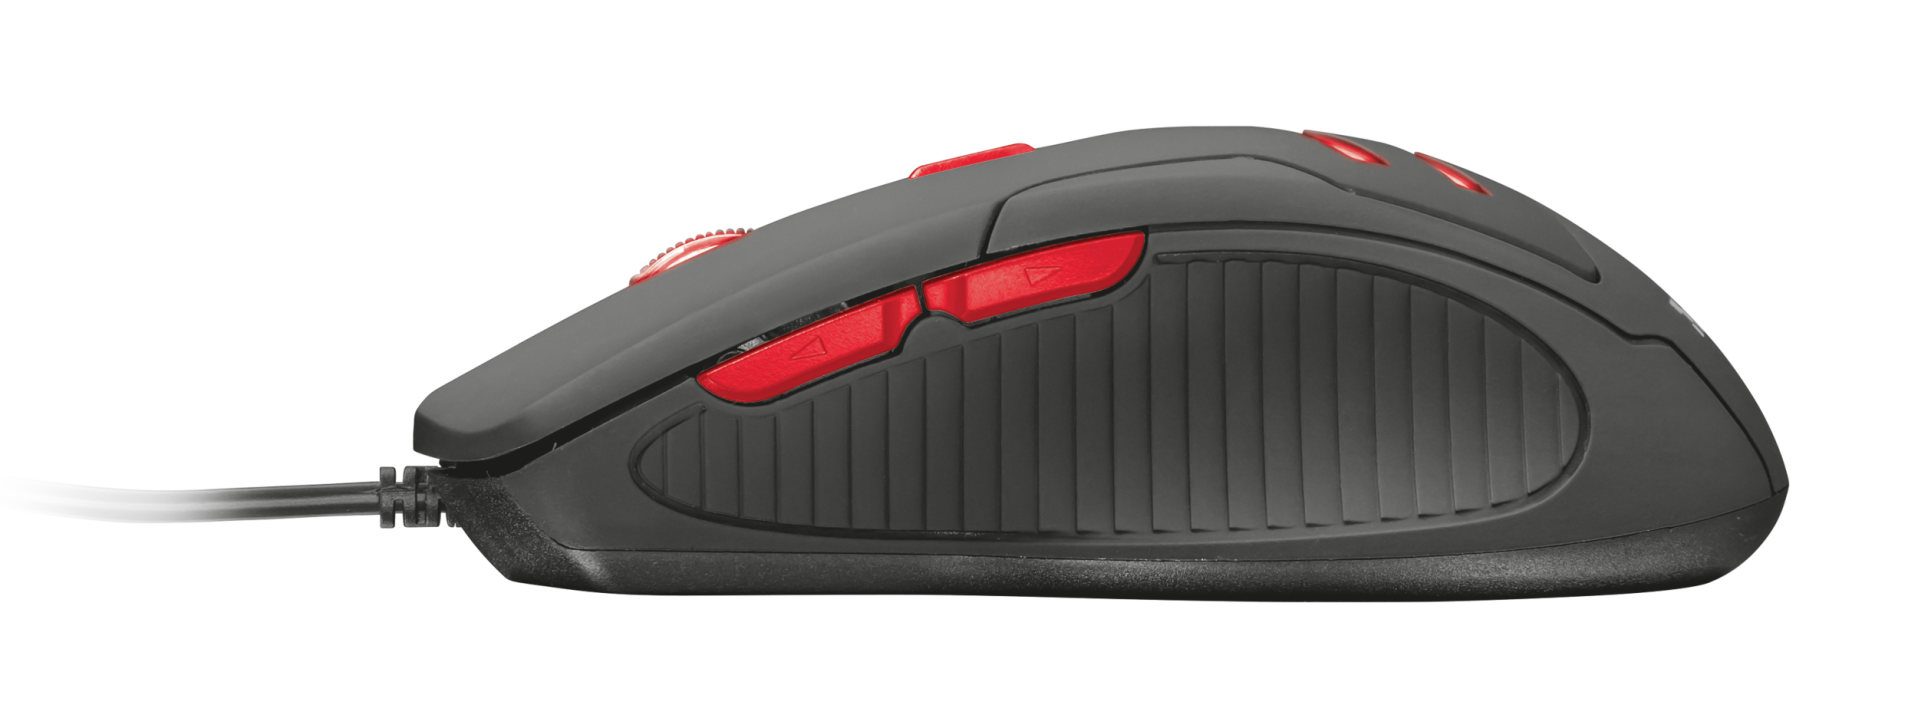 Ziva Gaming Mouse with mouse pad-Side